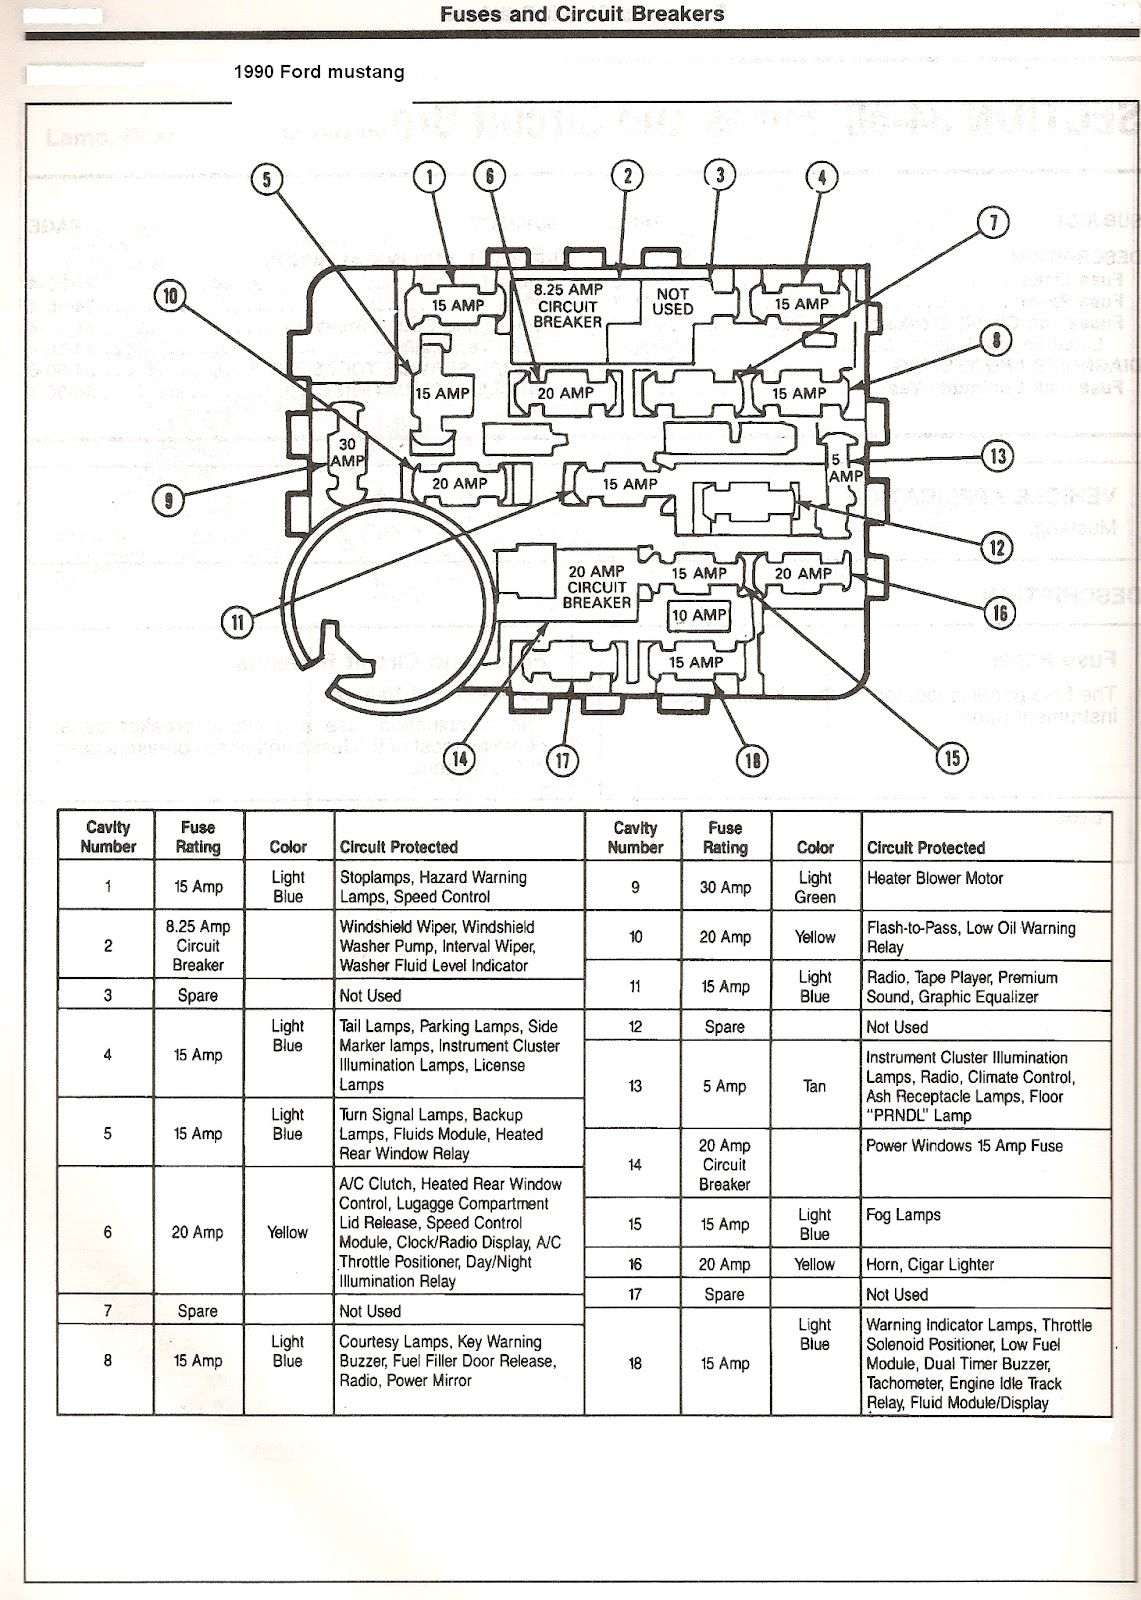 1986 ford mustang fuse box diagram - car wiring diagram circuit-army -  circuit-army.vinmarsrl.it  diagram database